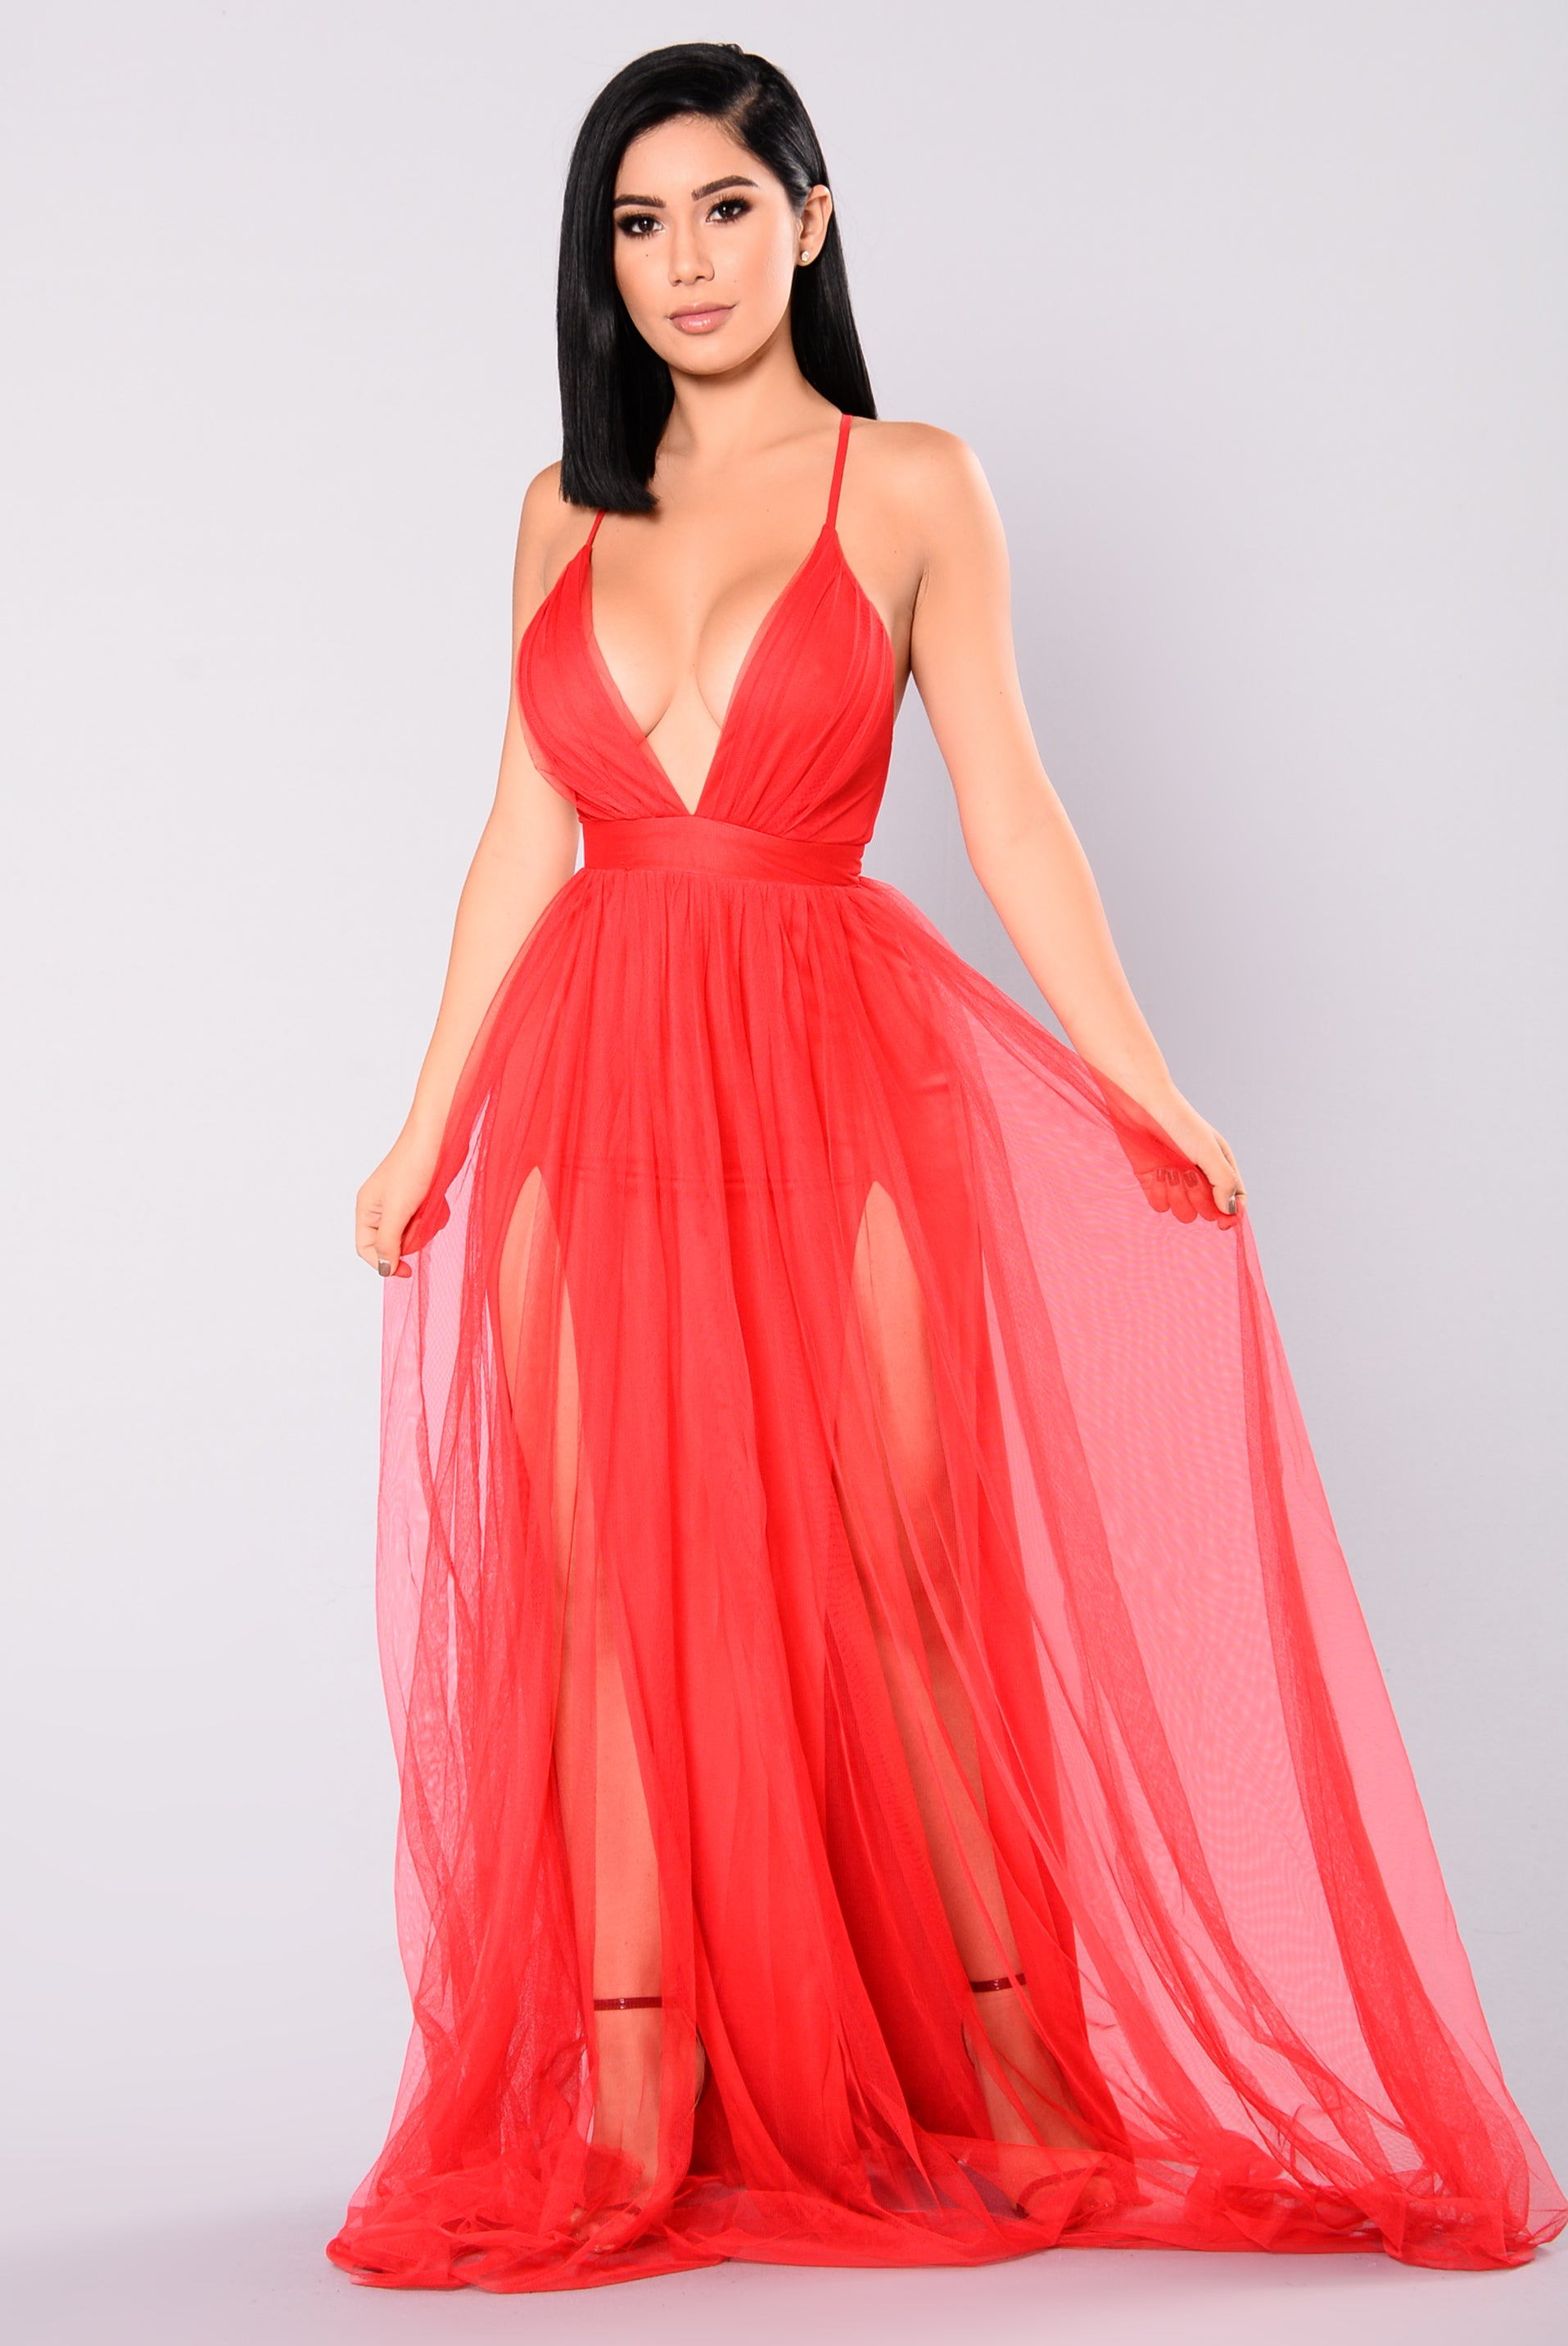 ac90abf62d4 On The Runway Maxi Dress - Red